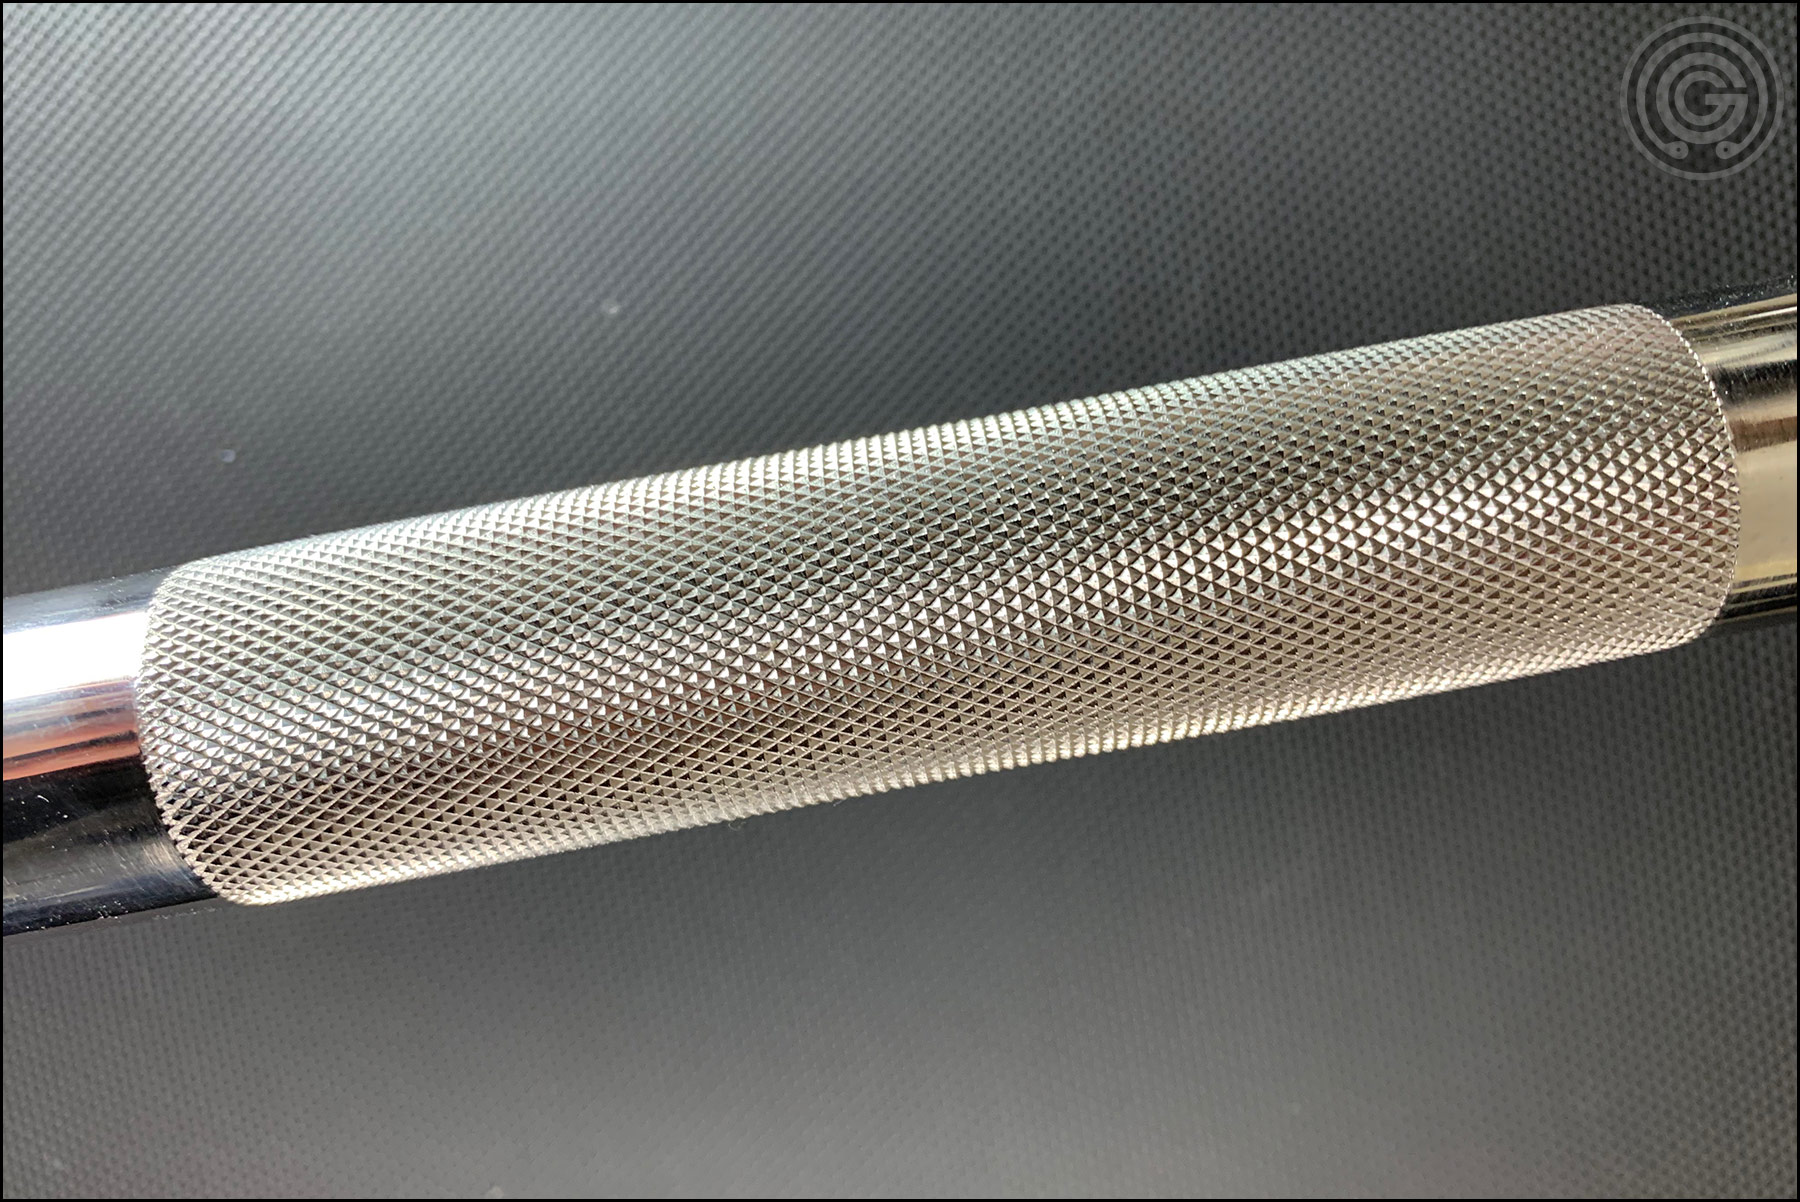 Vulcan Absolute Power Bar V2 (stainless steel variant) Center Knurling